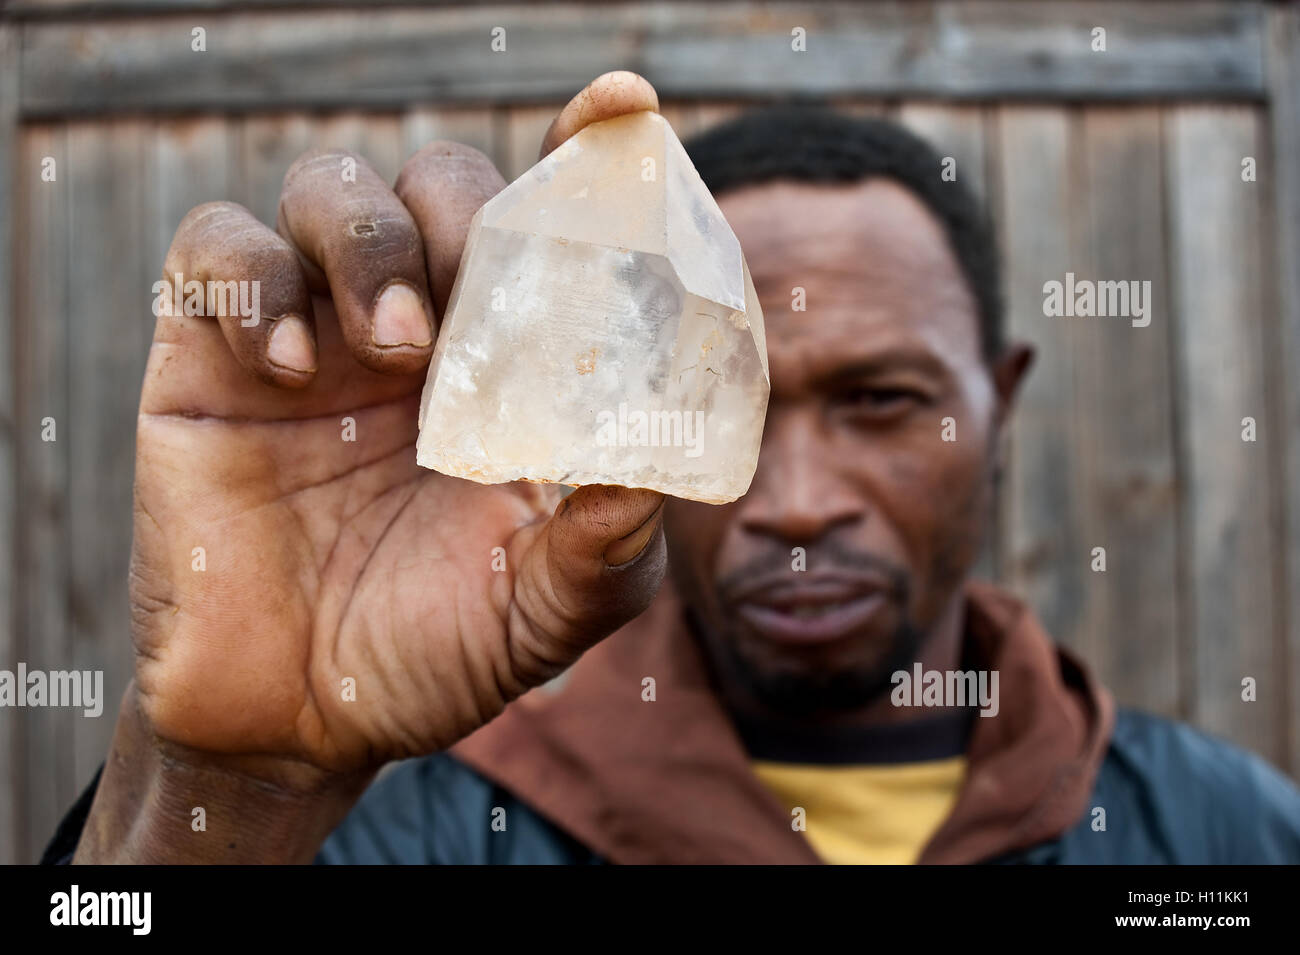 Worker holding rock crystal ( i.e. hyaline quartz) found in a nearby quarry ( Madagascar) - Stock Image